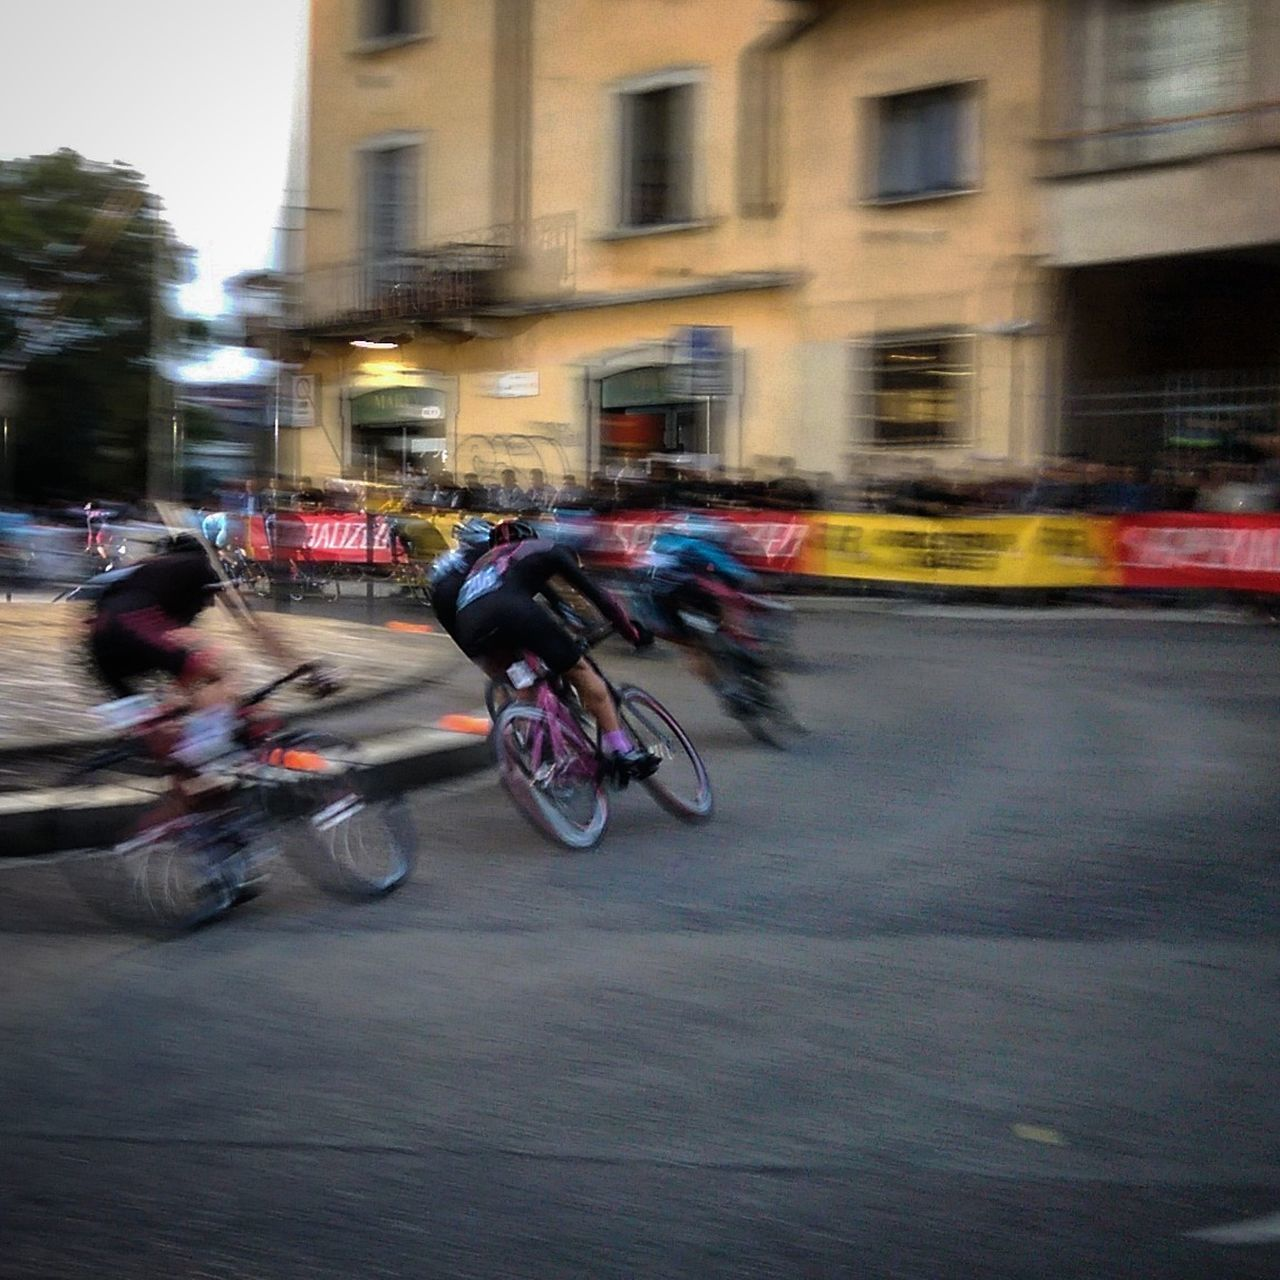 Bicycle Blurred Motion Cycling Fixed Fixed Bike Milan Milano Motion Race Real People Red Hook Criterium Riding Speed Street